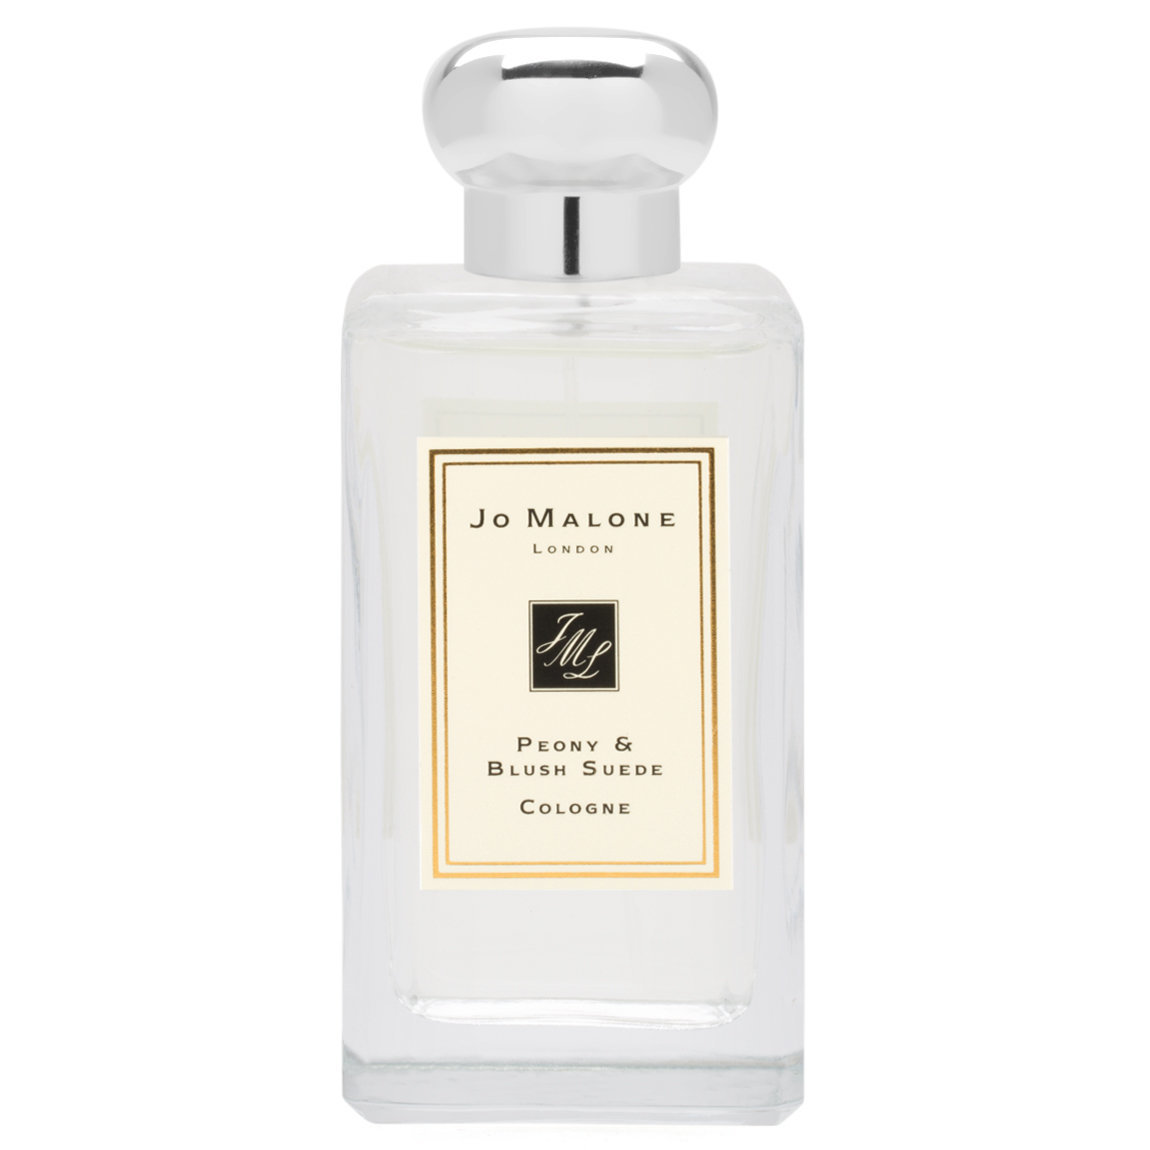 Jo Malone London Peony & Blush Suede Cologne 100 ml alternative view 1 - product swatch.